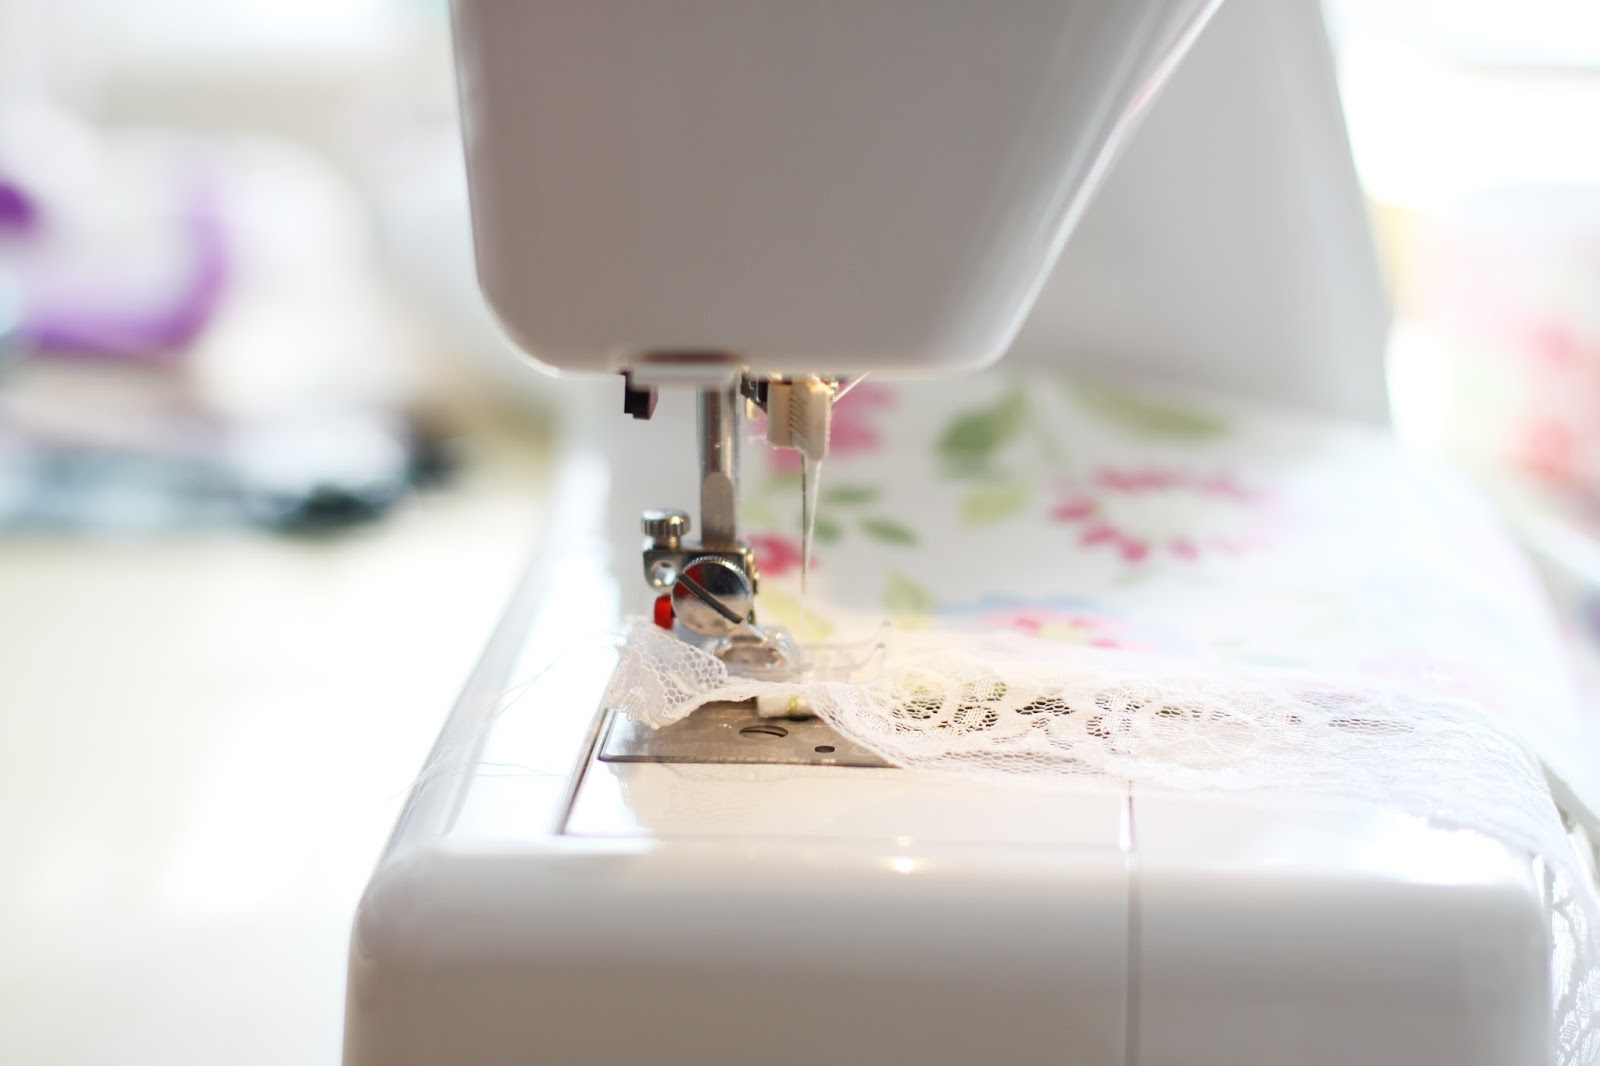 Sewing | Bella Coco craft room | Nicola White photography